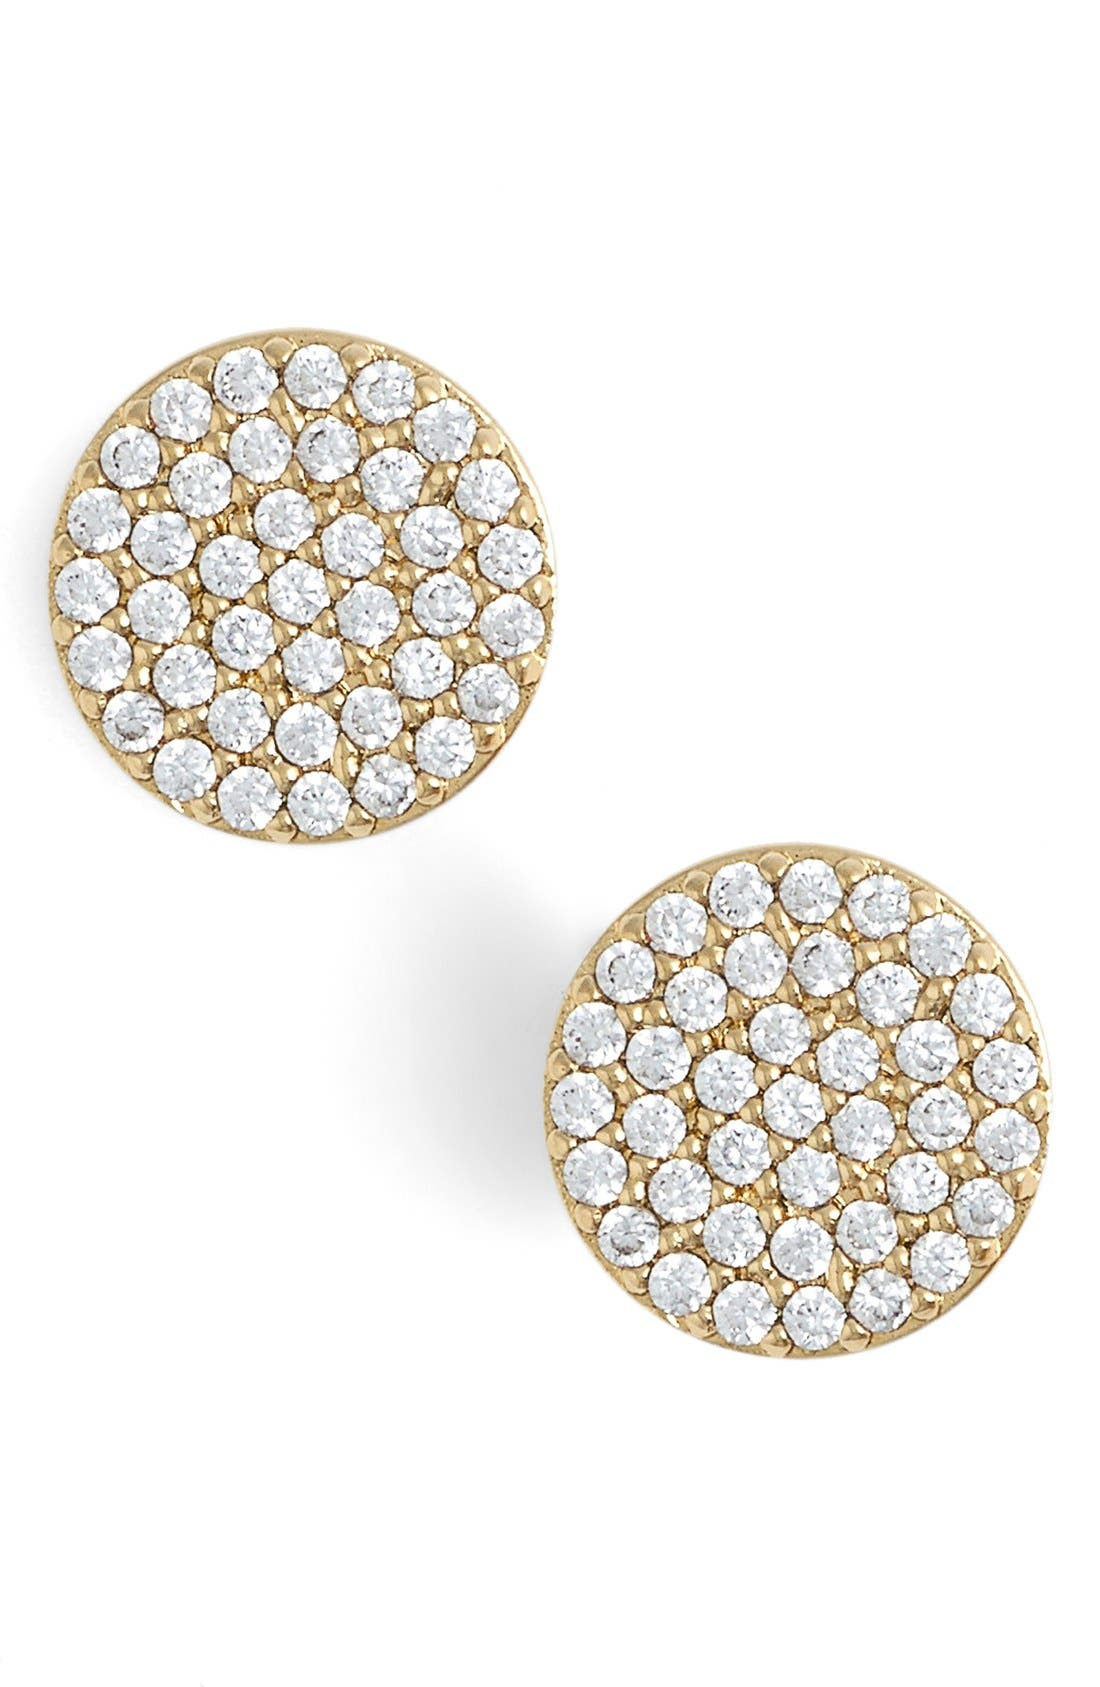 Main Image - Nadri 'Geo' Stud Earrings